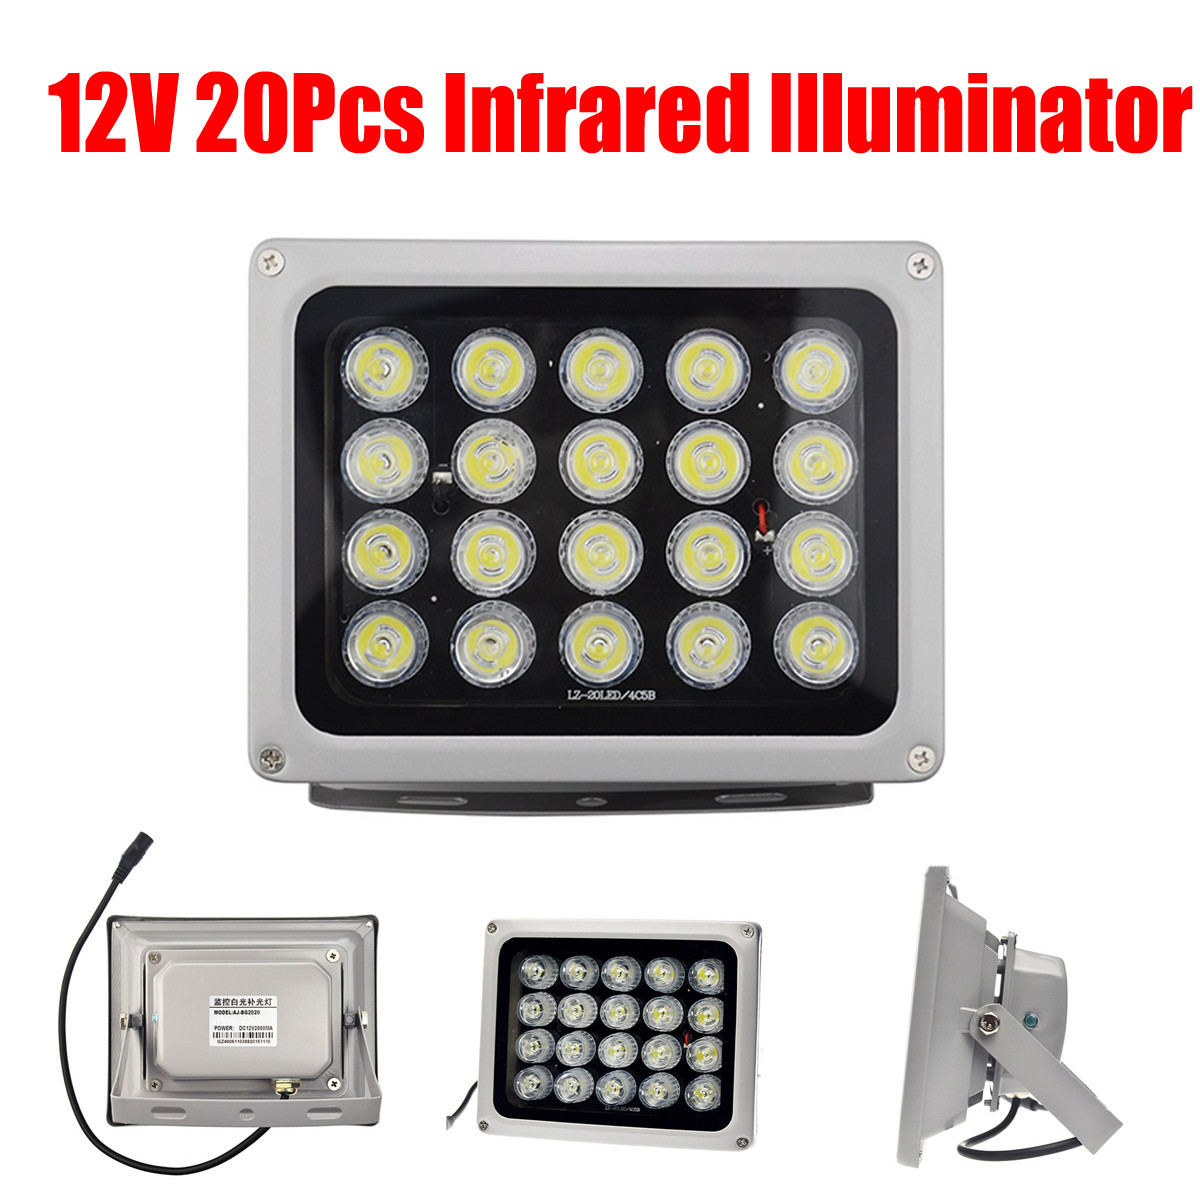 12V 90 Degree 20 LEDs IR Infrared Light Lamp IP65 850nm Waterproof Night Vision Infrared Illuminatoring for Home CCTV Security